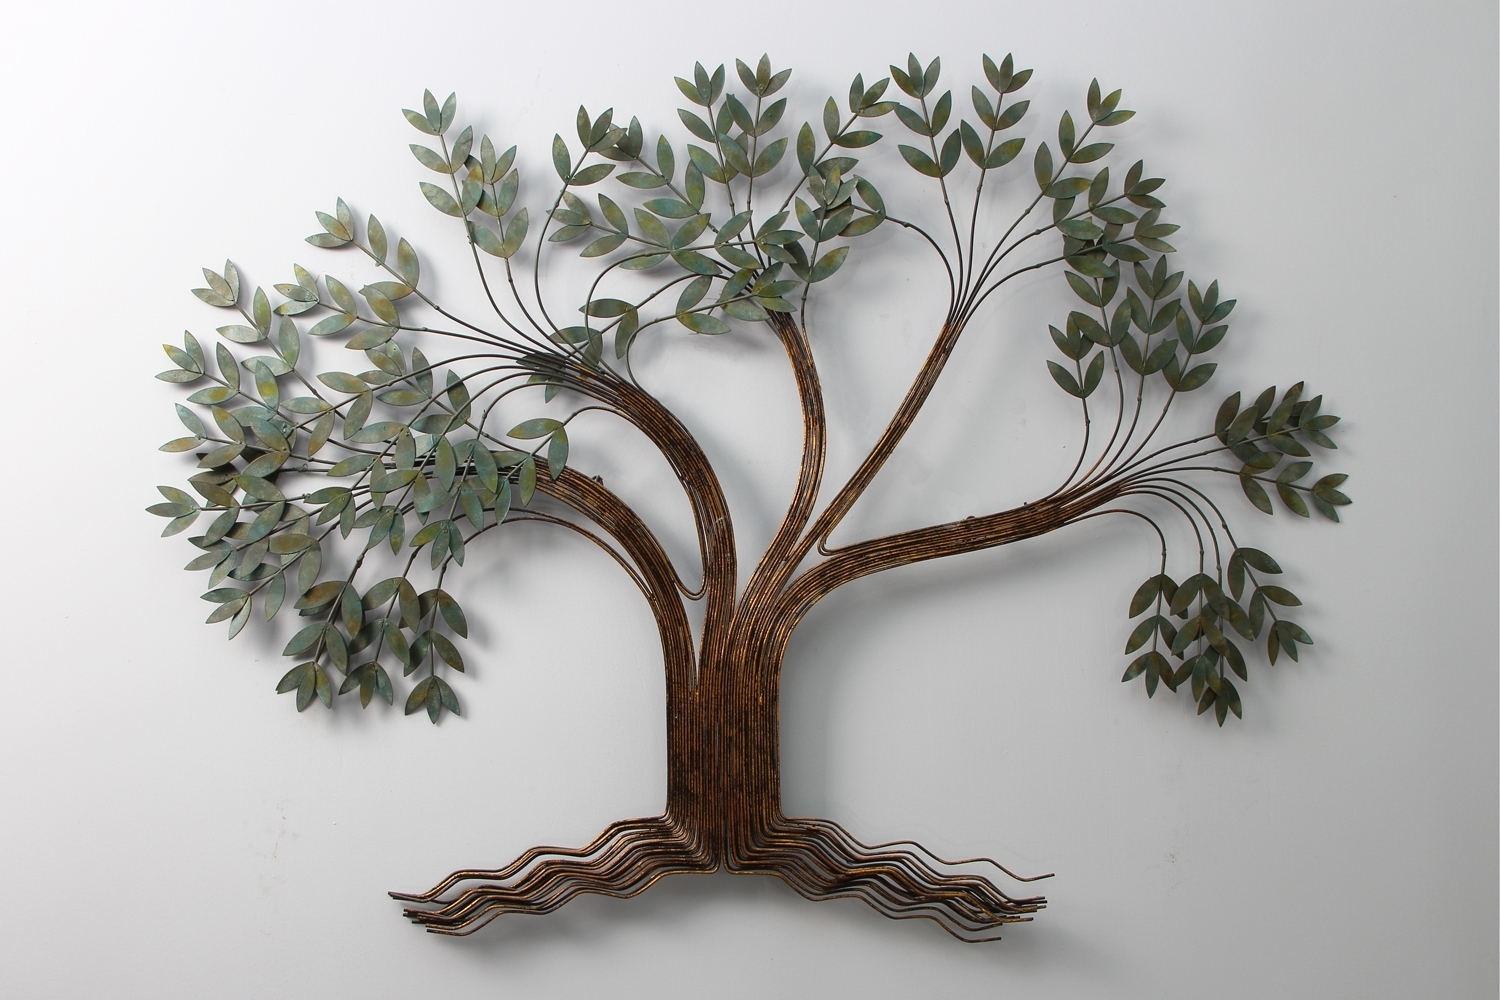 Metal Art Wall Decor Sculpture (View 4 of 15)